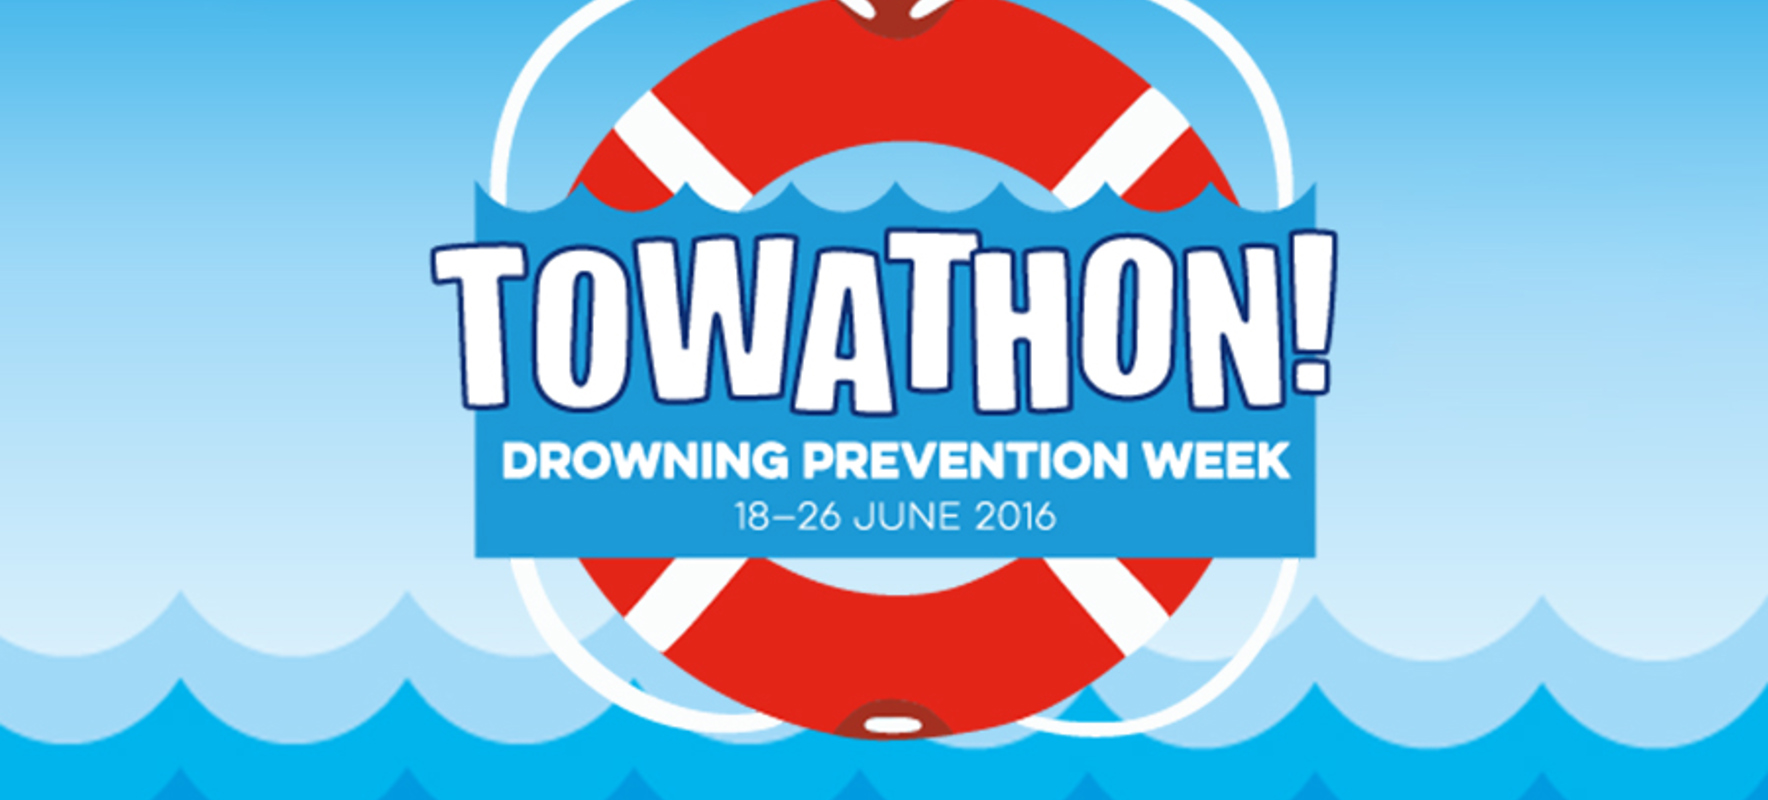 Attract new customers during Drowning Prevention Week